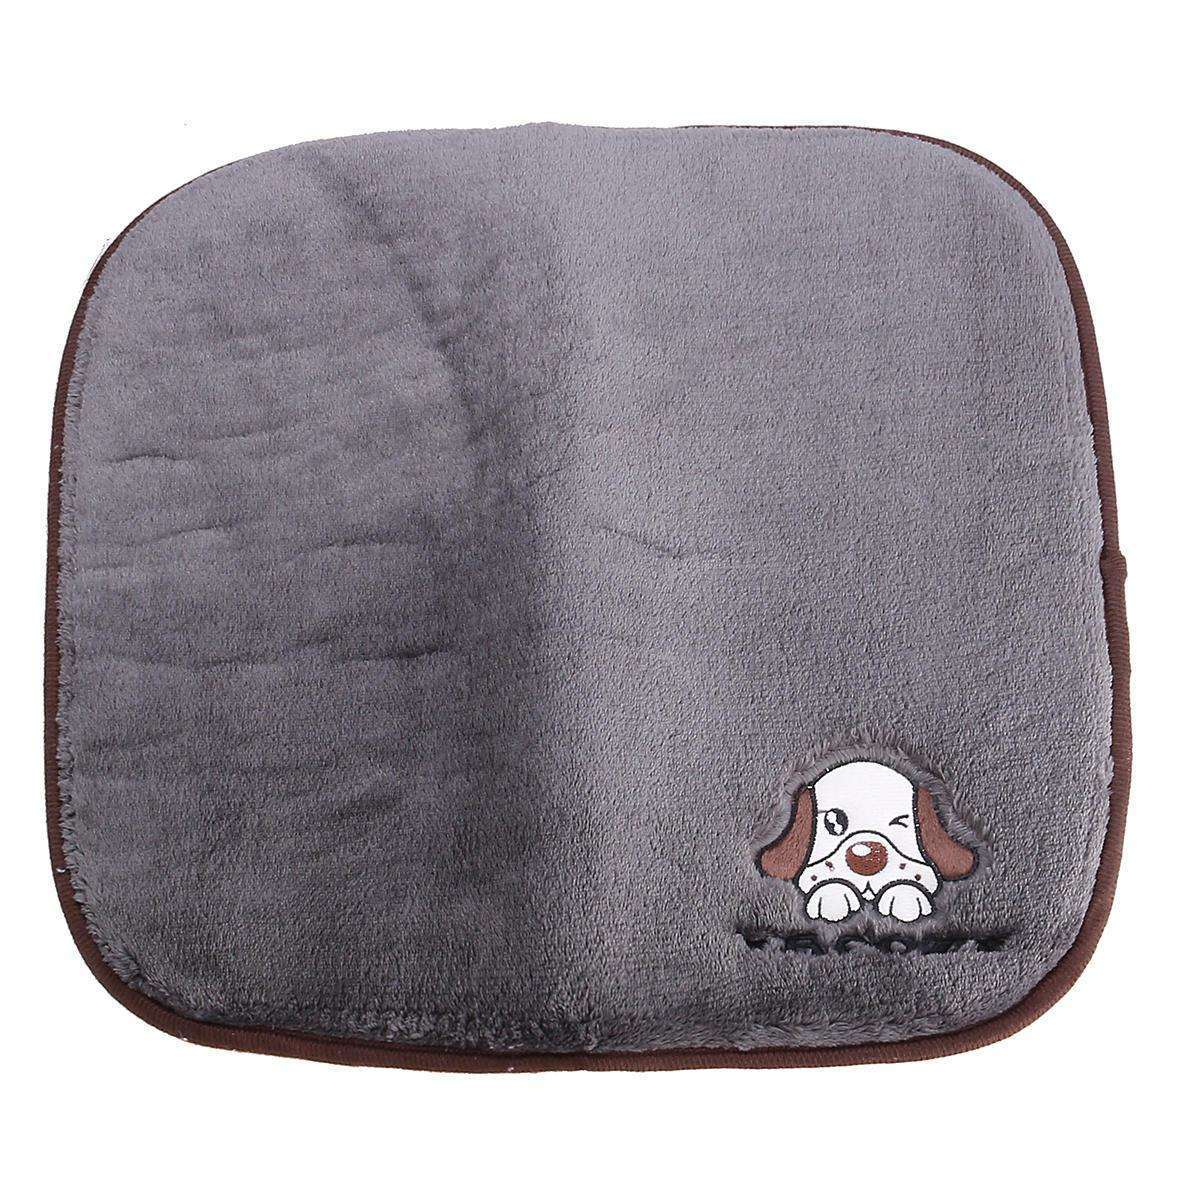 LARNELEC :2 in 1 Dog Cat Pet Warm Sleeping Blanket And Cooling Bed Pad,Grey / L,Dog Mat